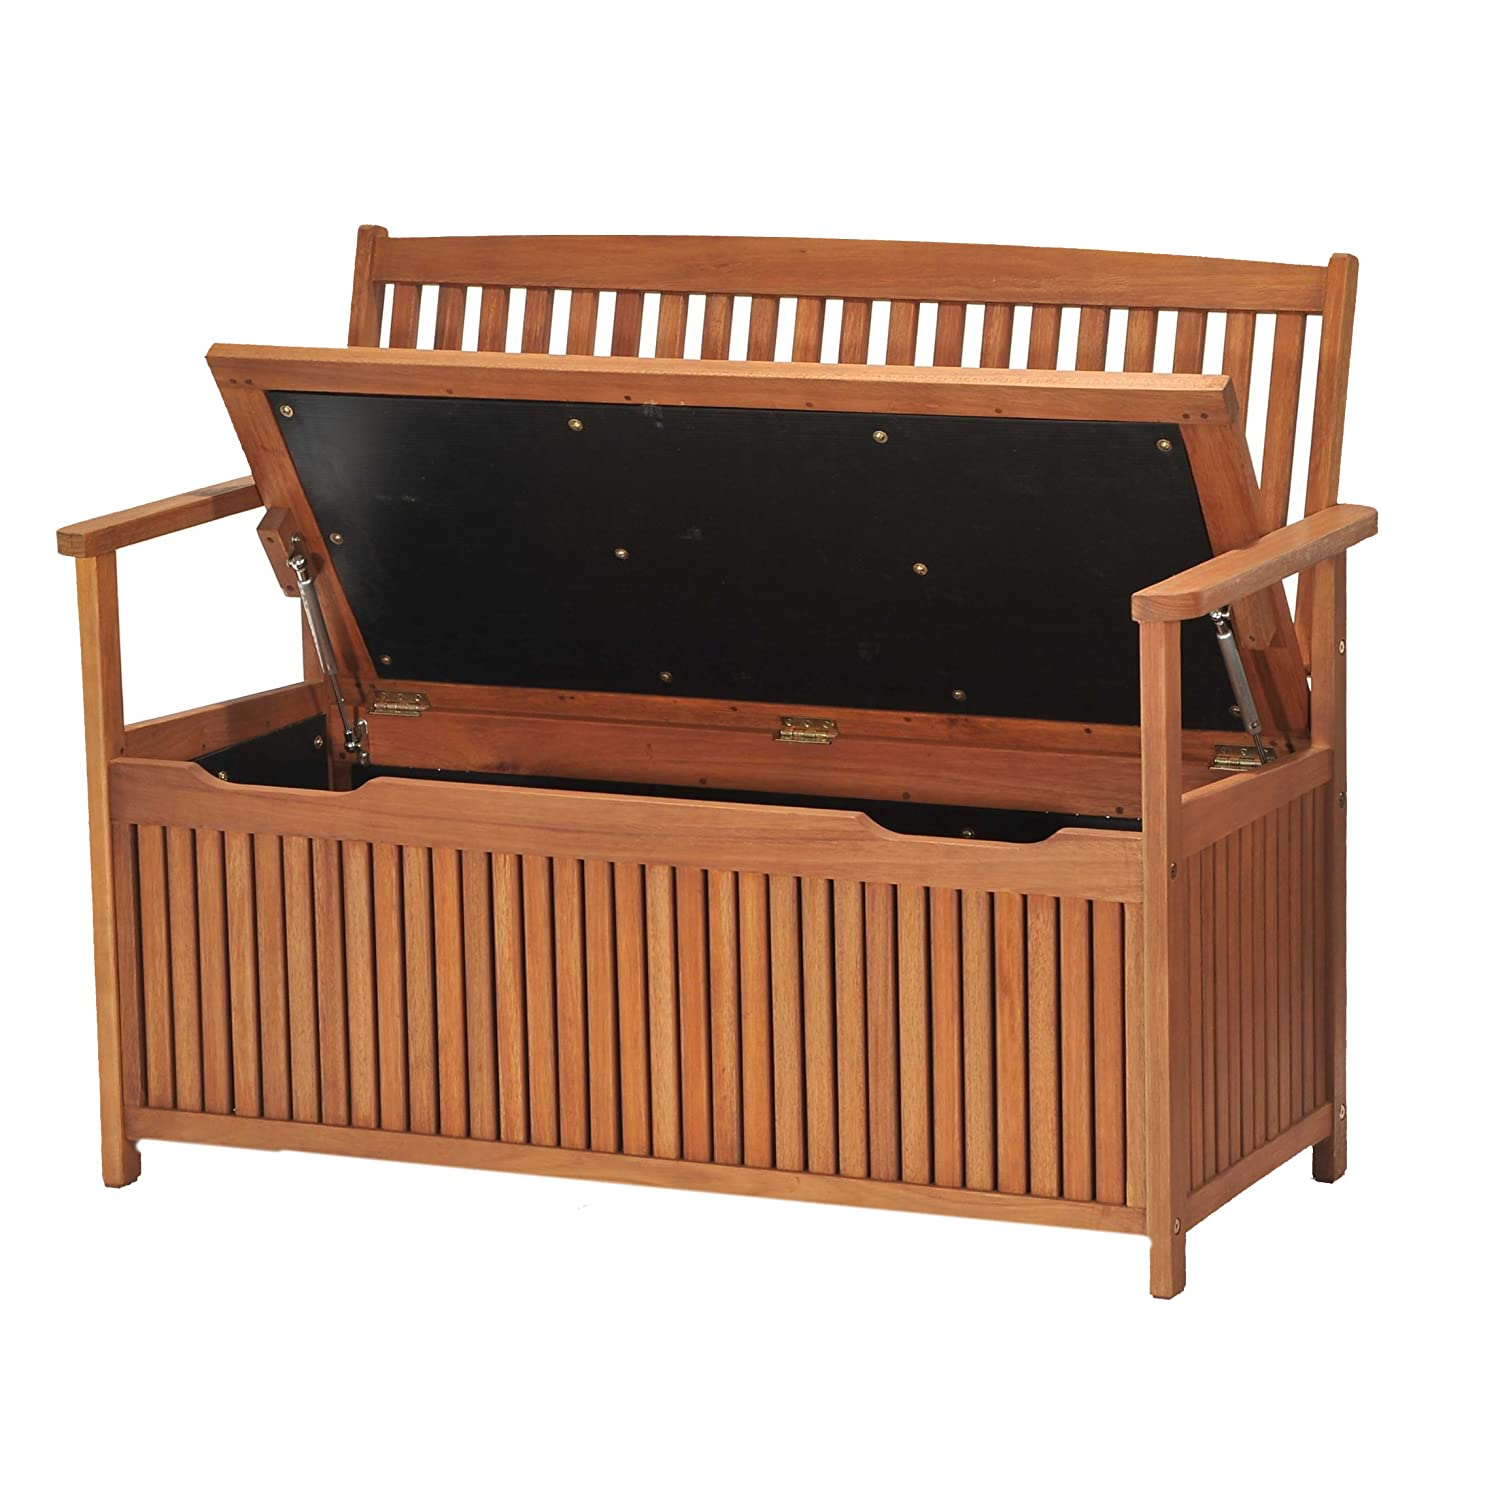 NEW Eucalyptus Wood Outdoor Storage Bench Wooden Garden Furniture Seating Sea